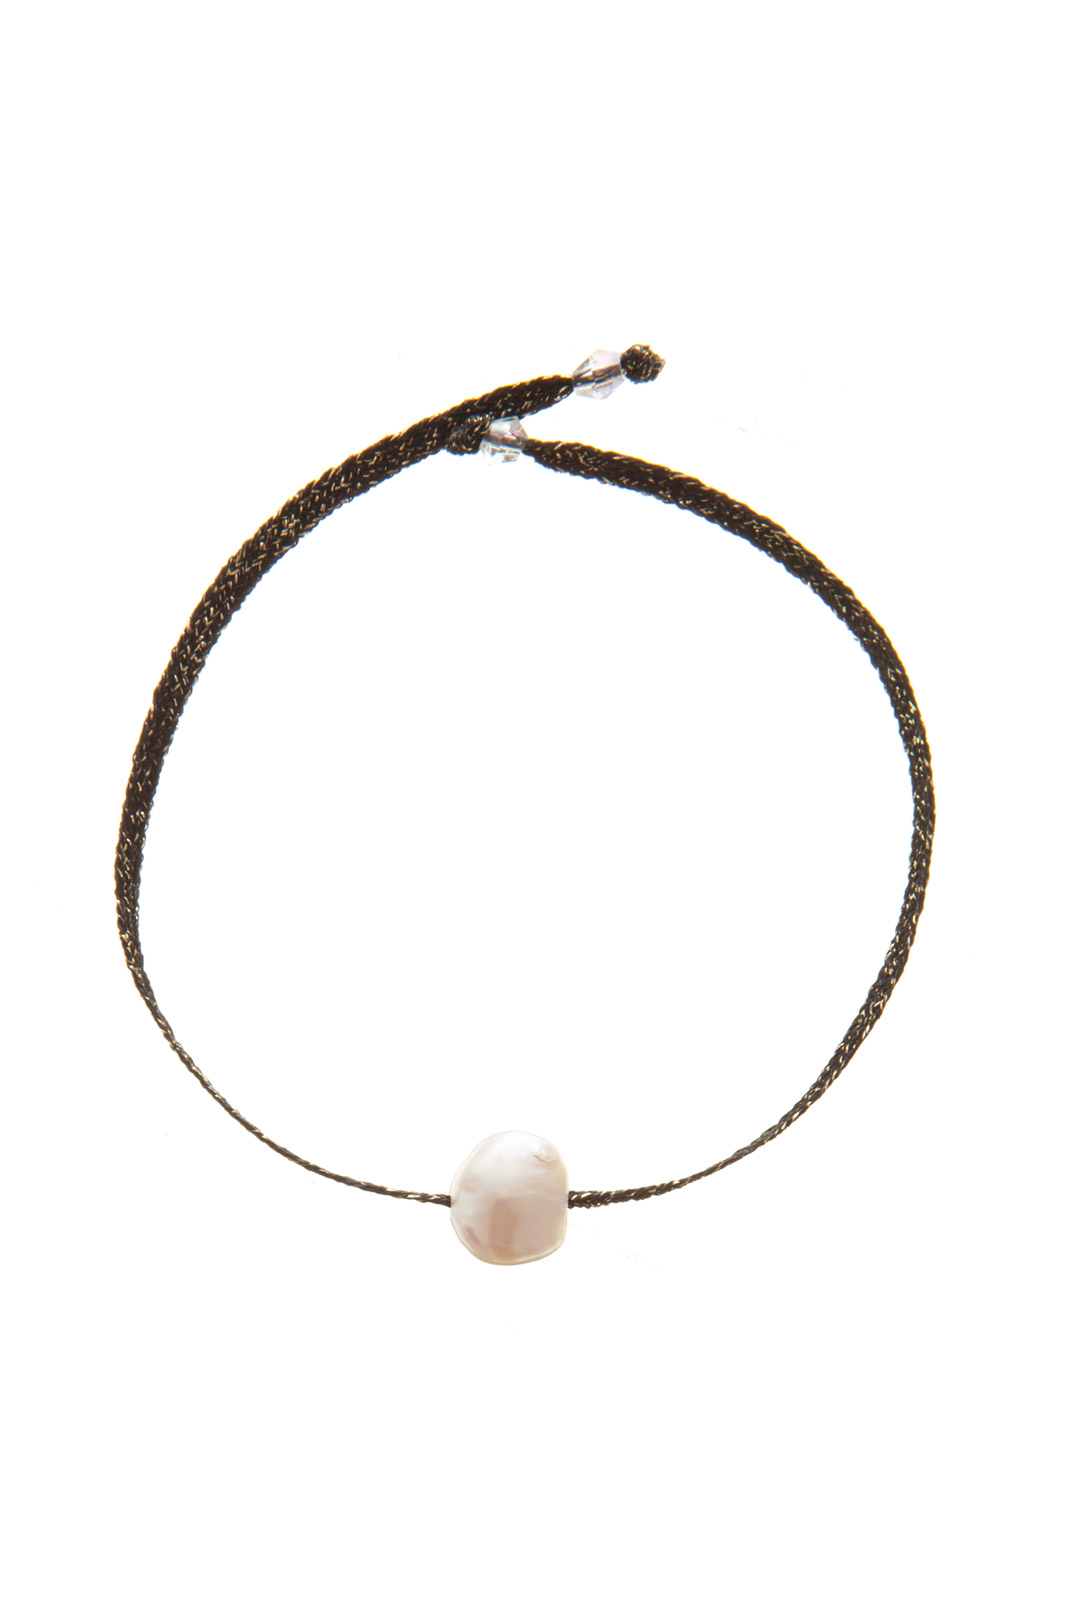 Cowboy Black and Gold -Cultured pearl mounted on a black and gold ribbon woven with an authentic 18k gold thread.Size of pearl : 8-9 mm -CHF80